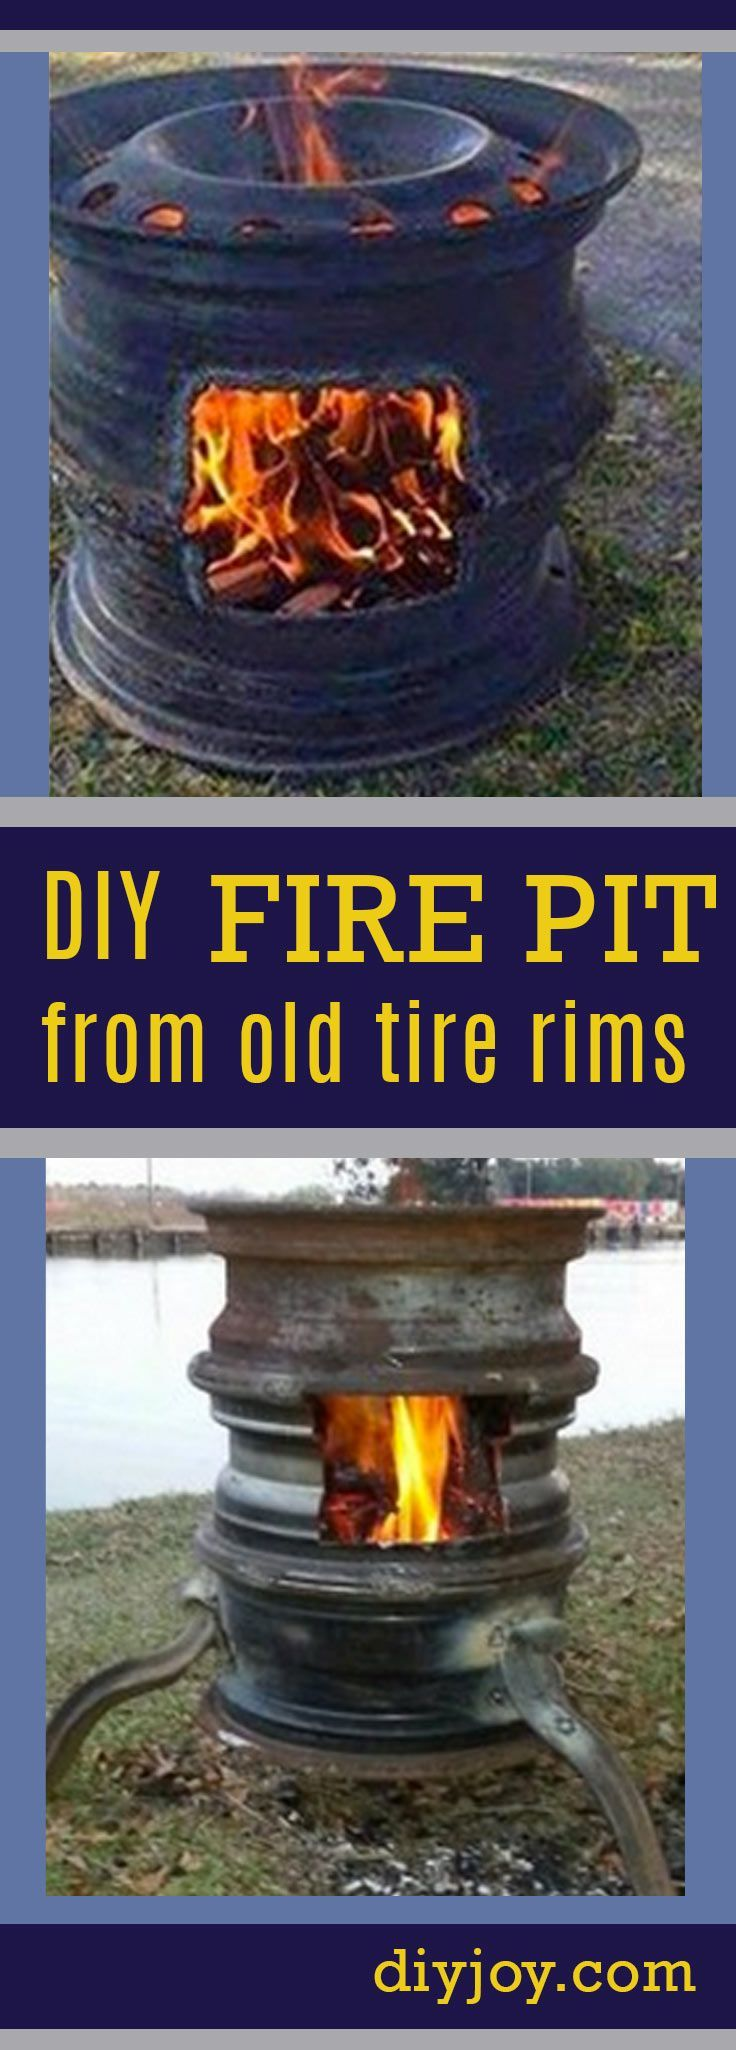 DIY Fire Pit Ideas - Fire Pit Project from Old Tire Rims   Awesome DIY Outdoors Ideas for the Backyard and Patio